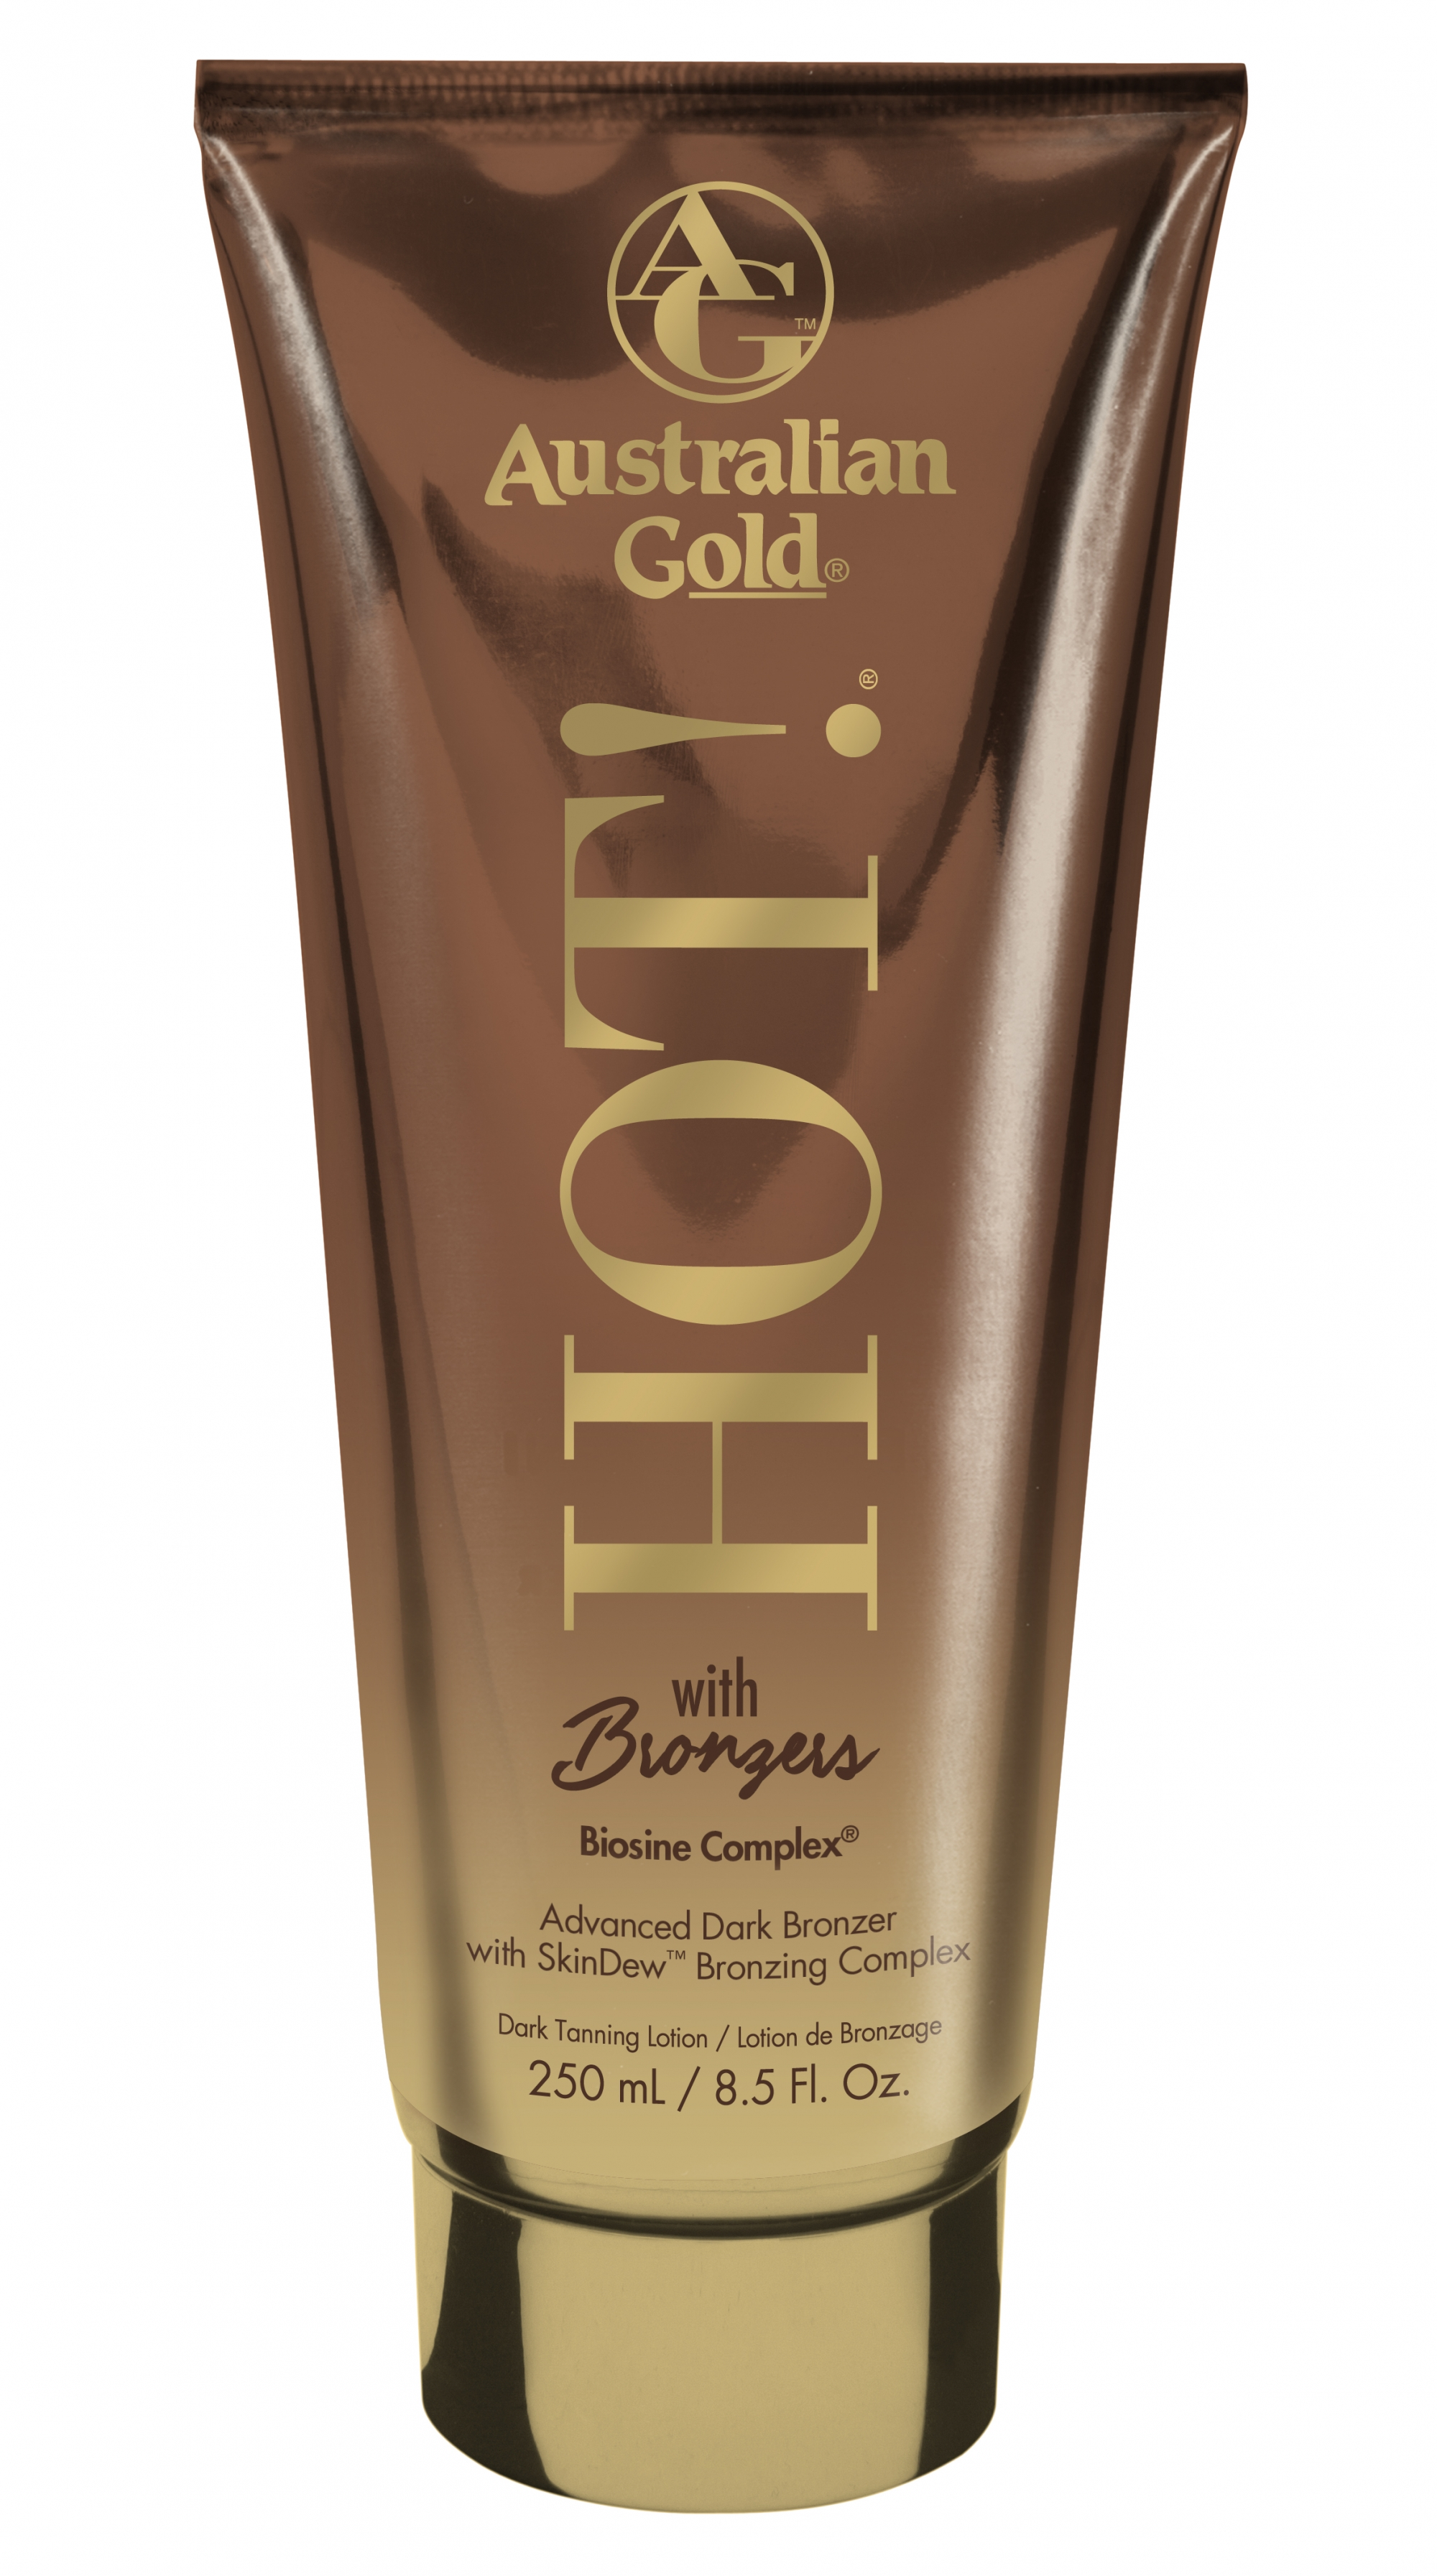 Hot!® with Bronzers